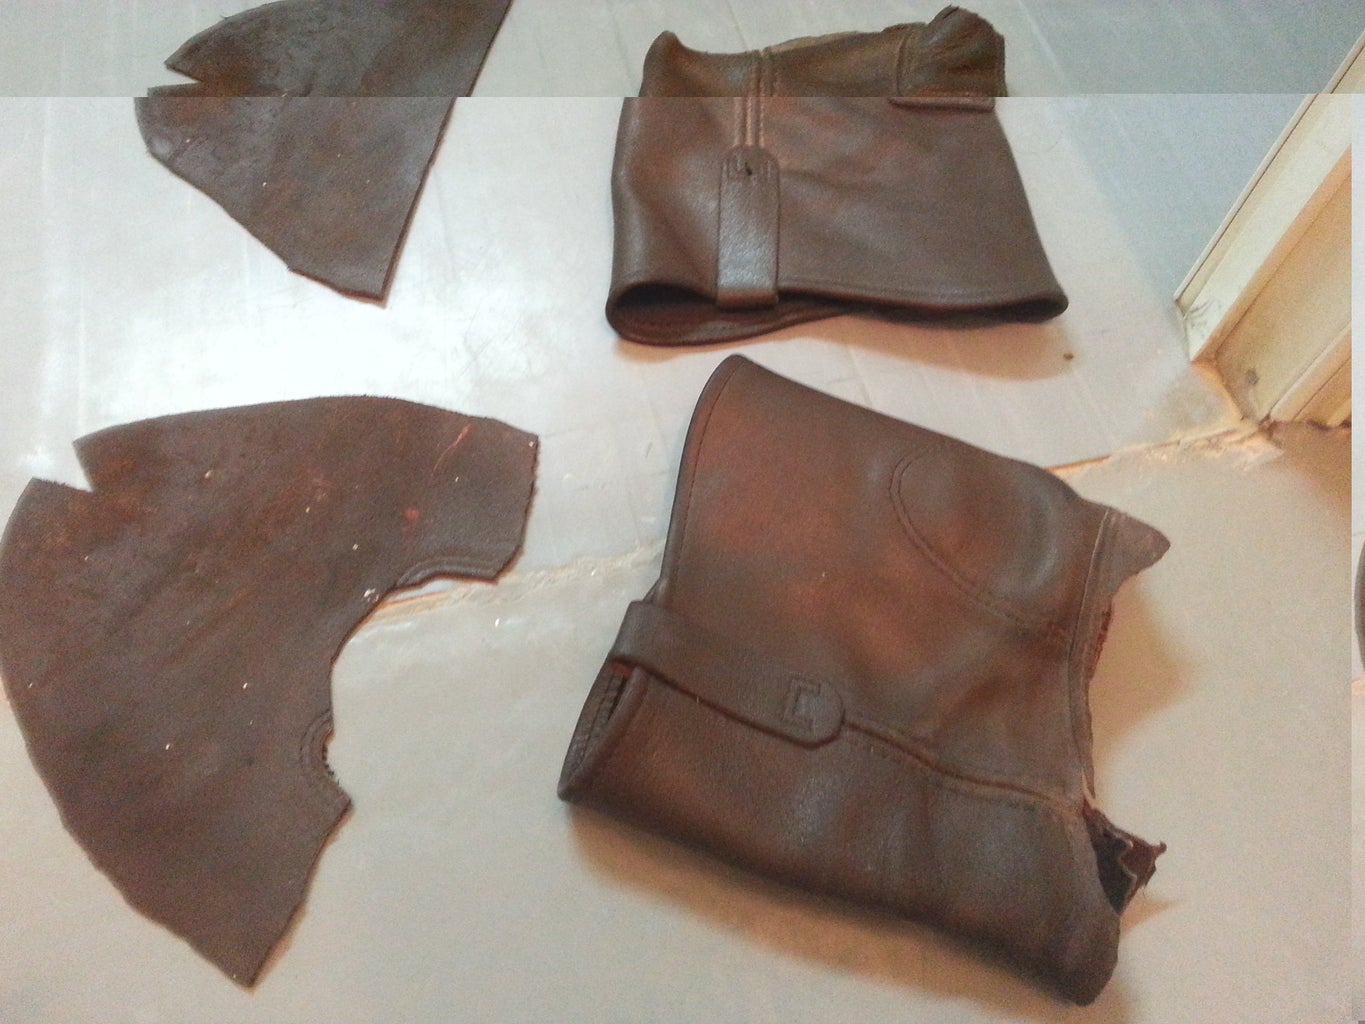 Harvesting and Cleaning the Leather